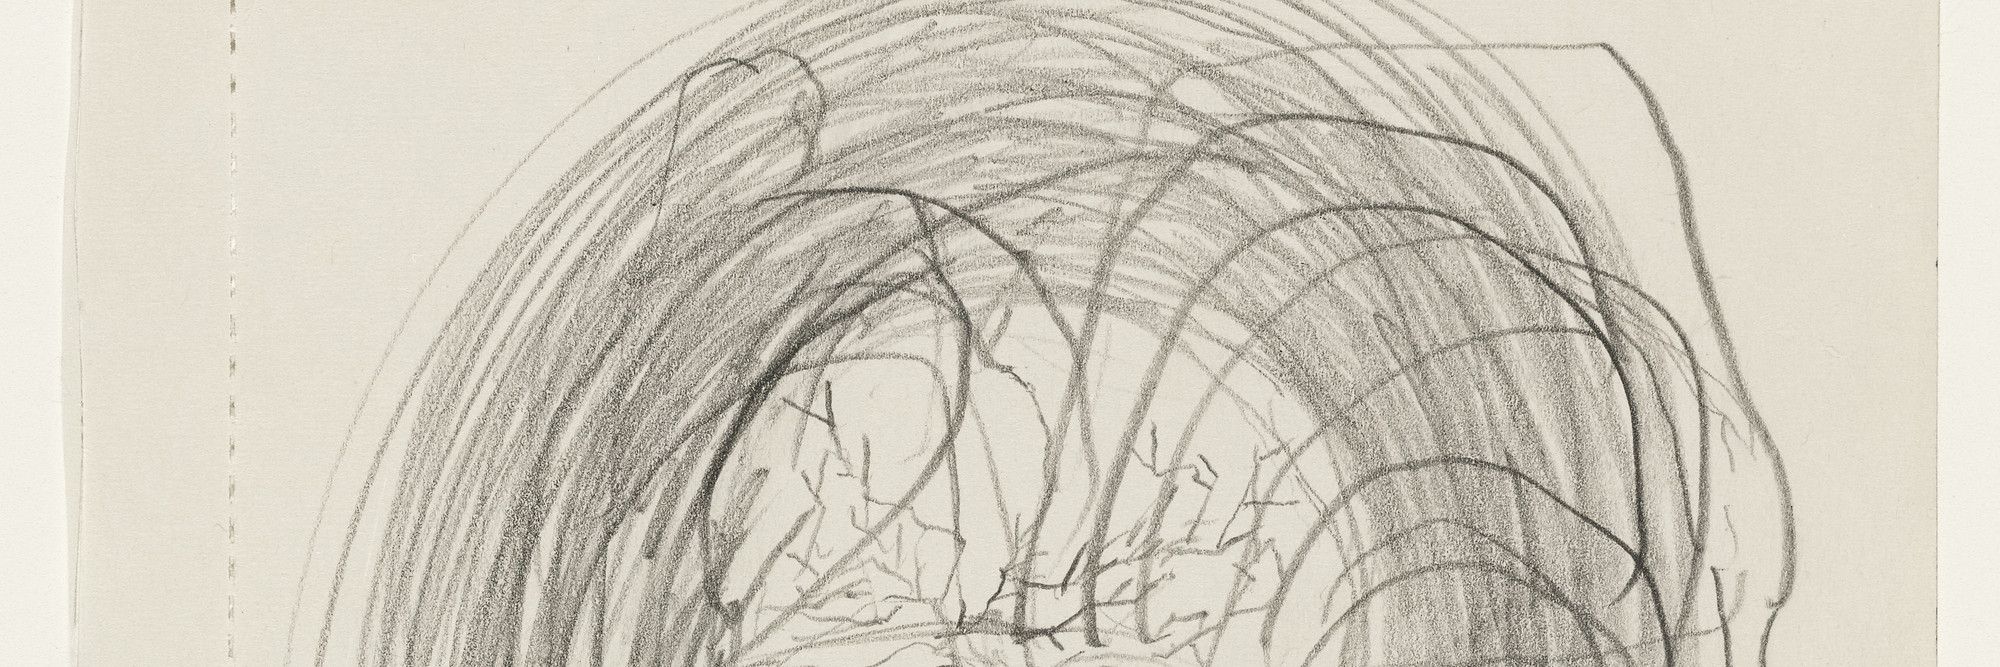 Joseph Beuys. Untitled. 1974. Pencil on paper, 8 1/2 × 5 3/8″ (21.6 × 13.7 cm). Gift of the artist. © 2016 Artists Rights Society (ARS), New York / VG Bild-Kunst, Bonn